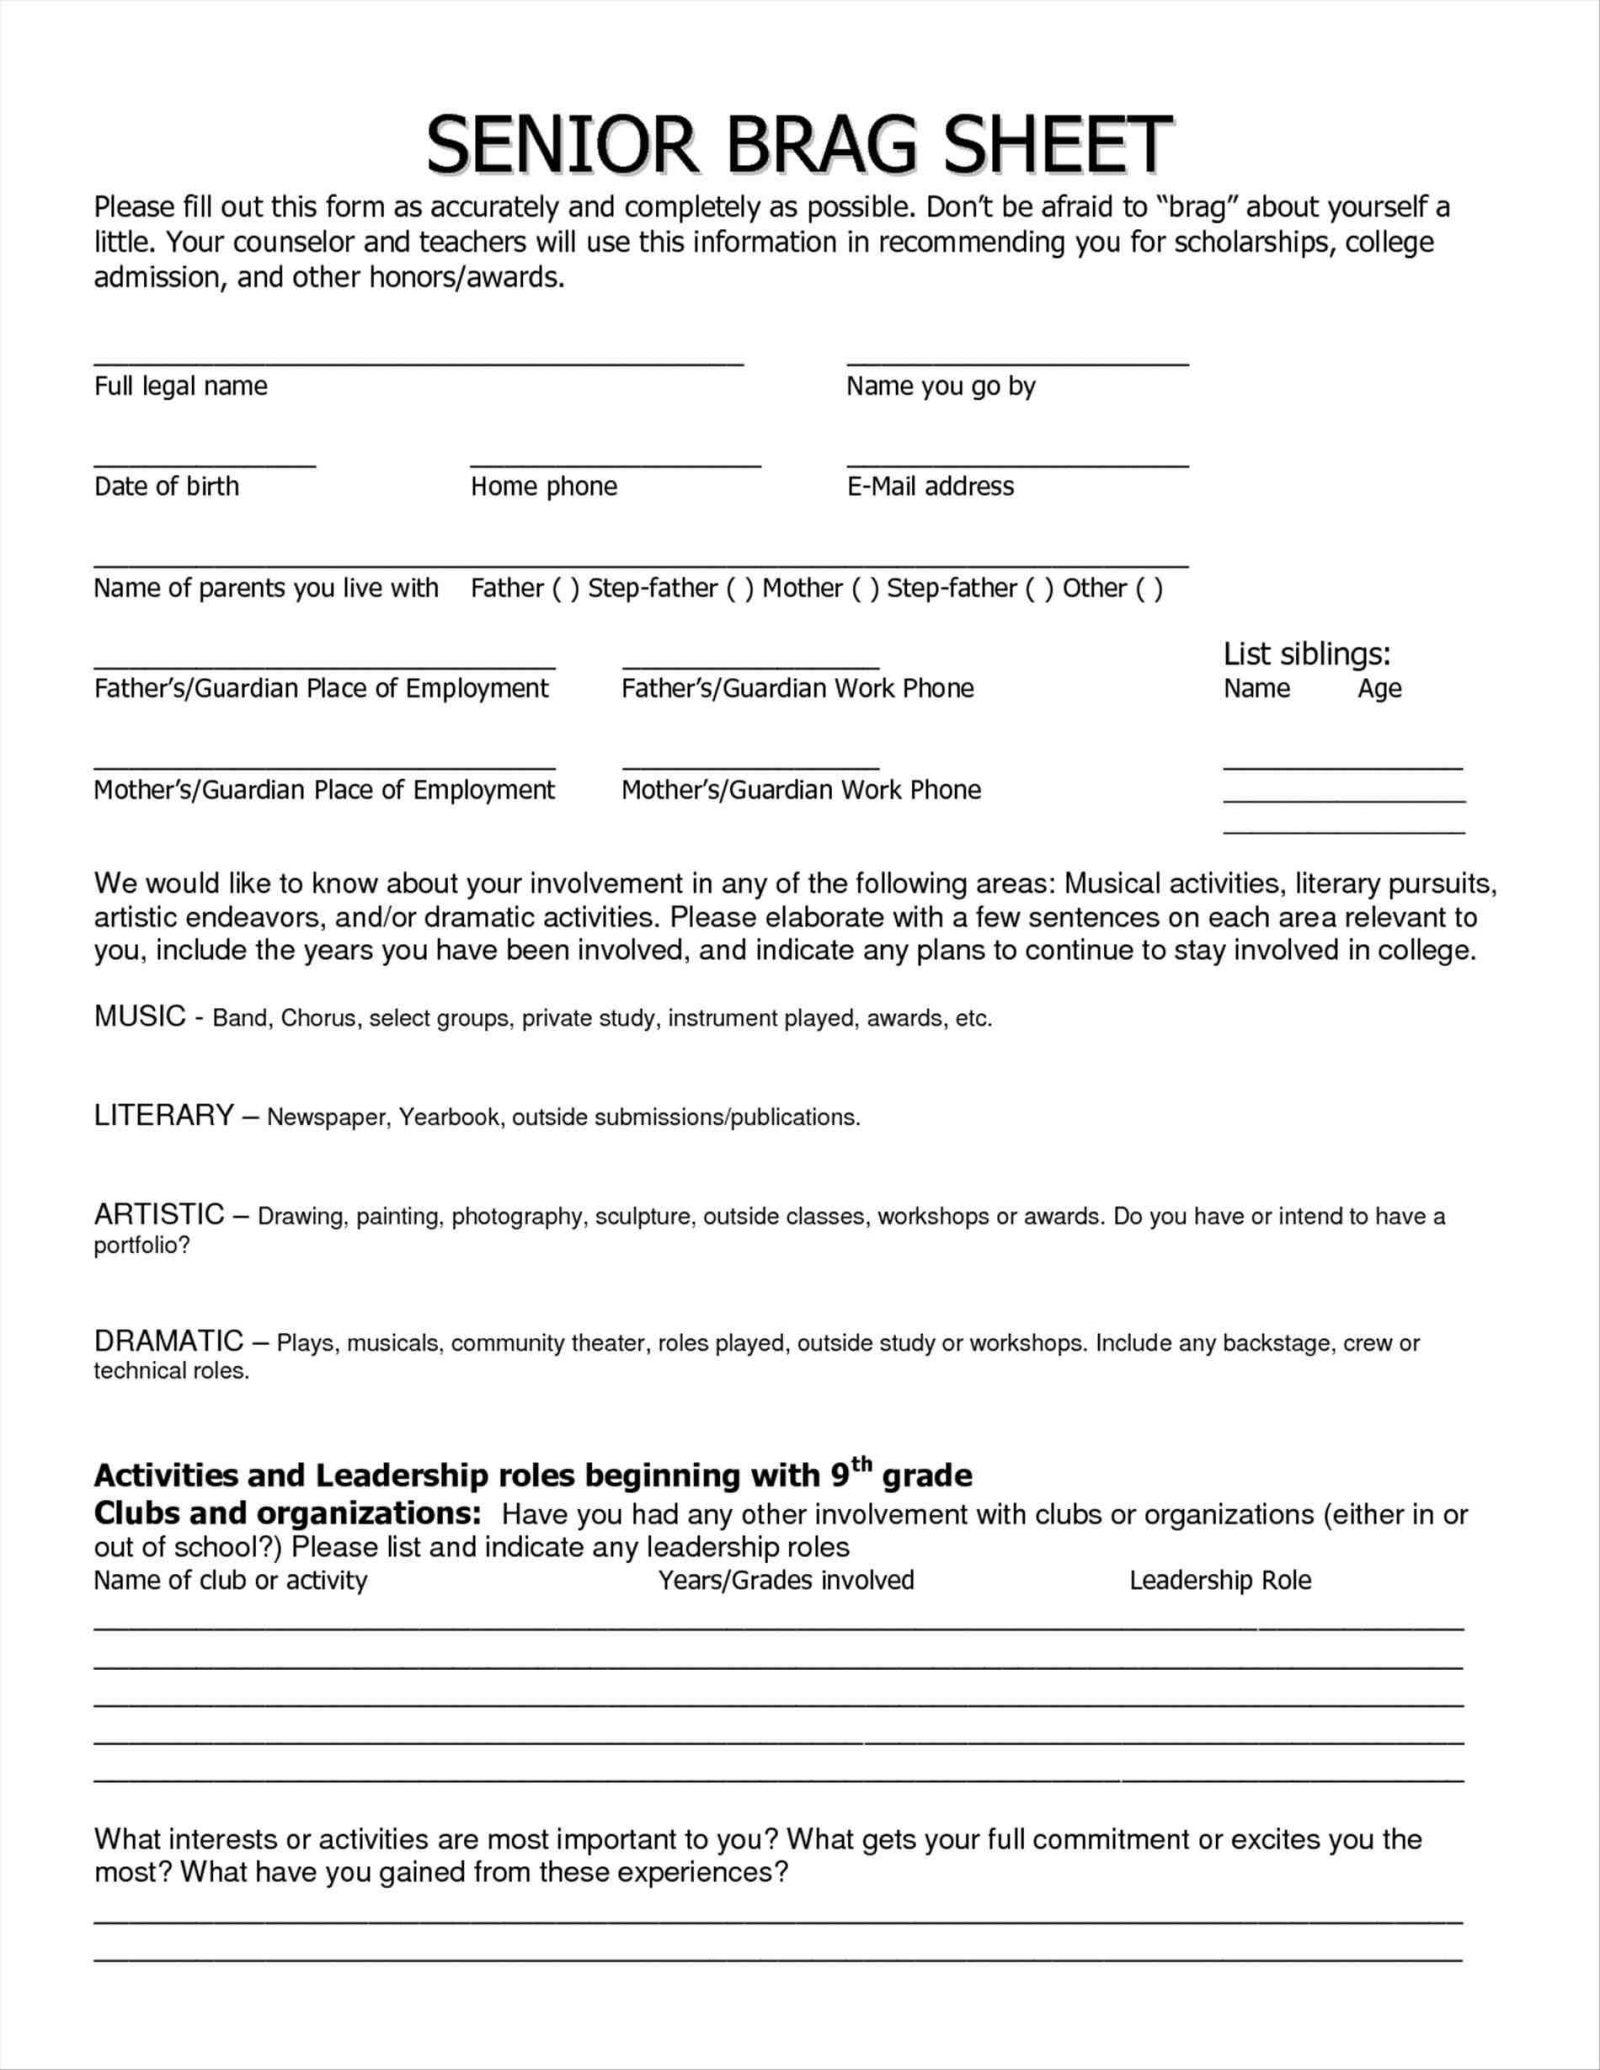 Brag Sheet Template for Letter Of Recommendation - Letter Re Mendation Brag Sheet